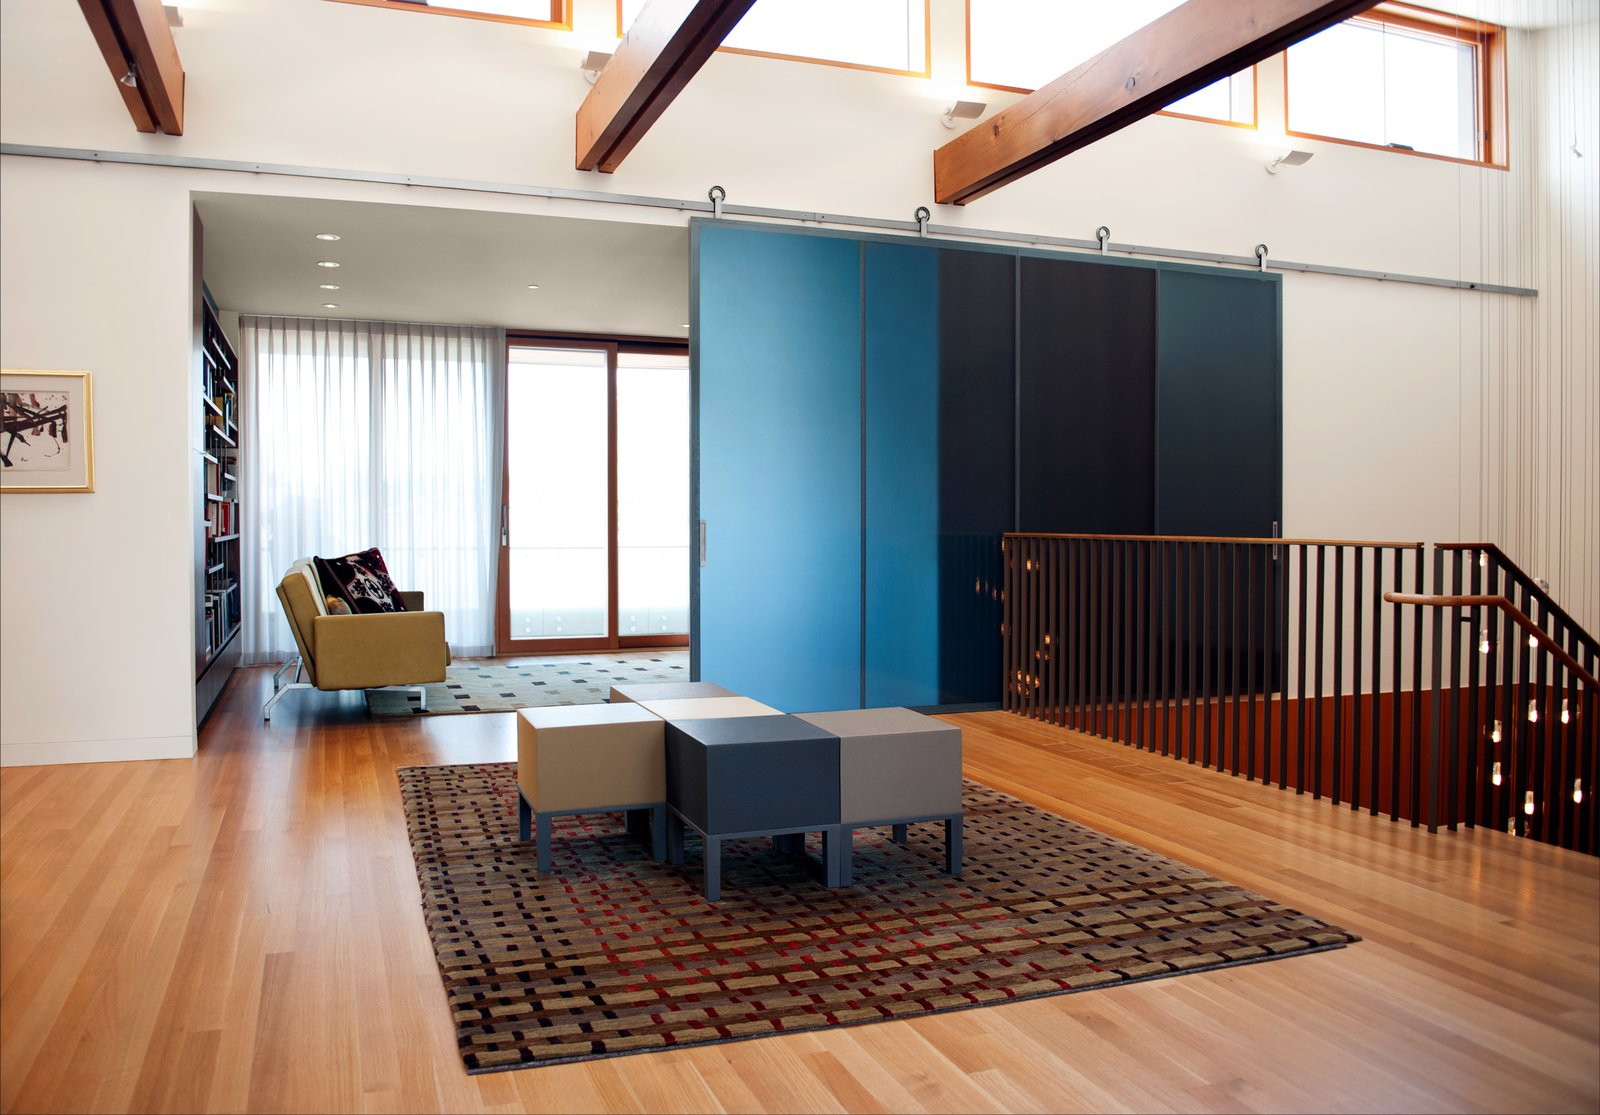 The DECA Architecture team designed a central gallery that connects the main stairwell entry to the dining room and living room.   The CYRK Building